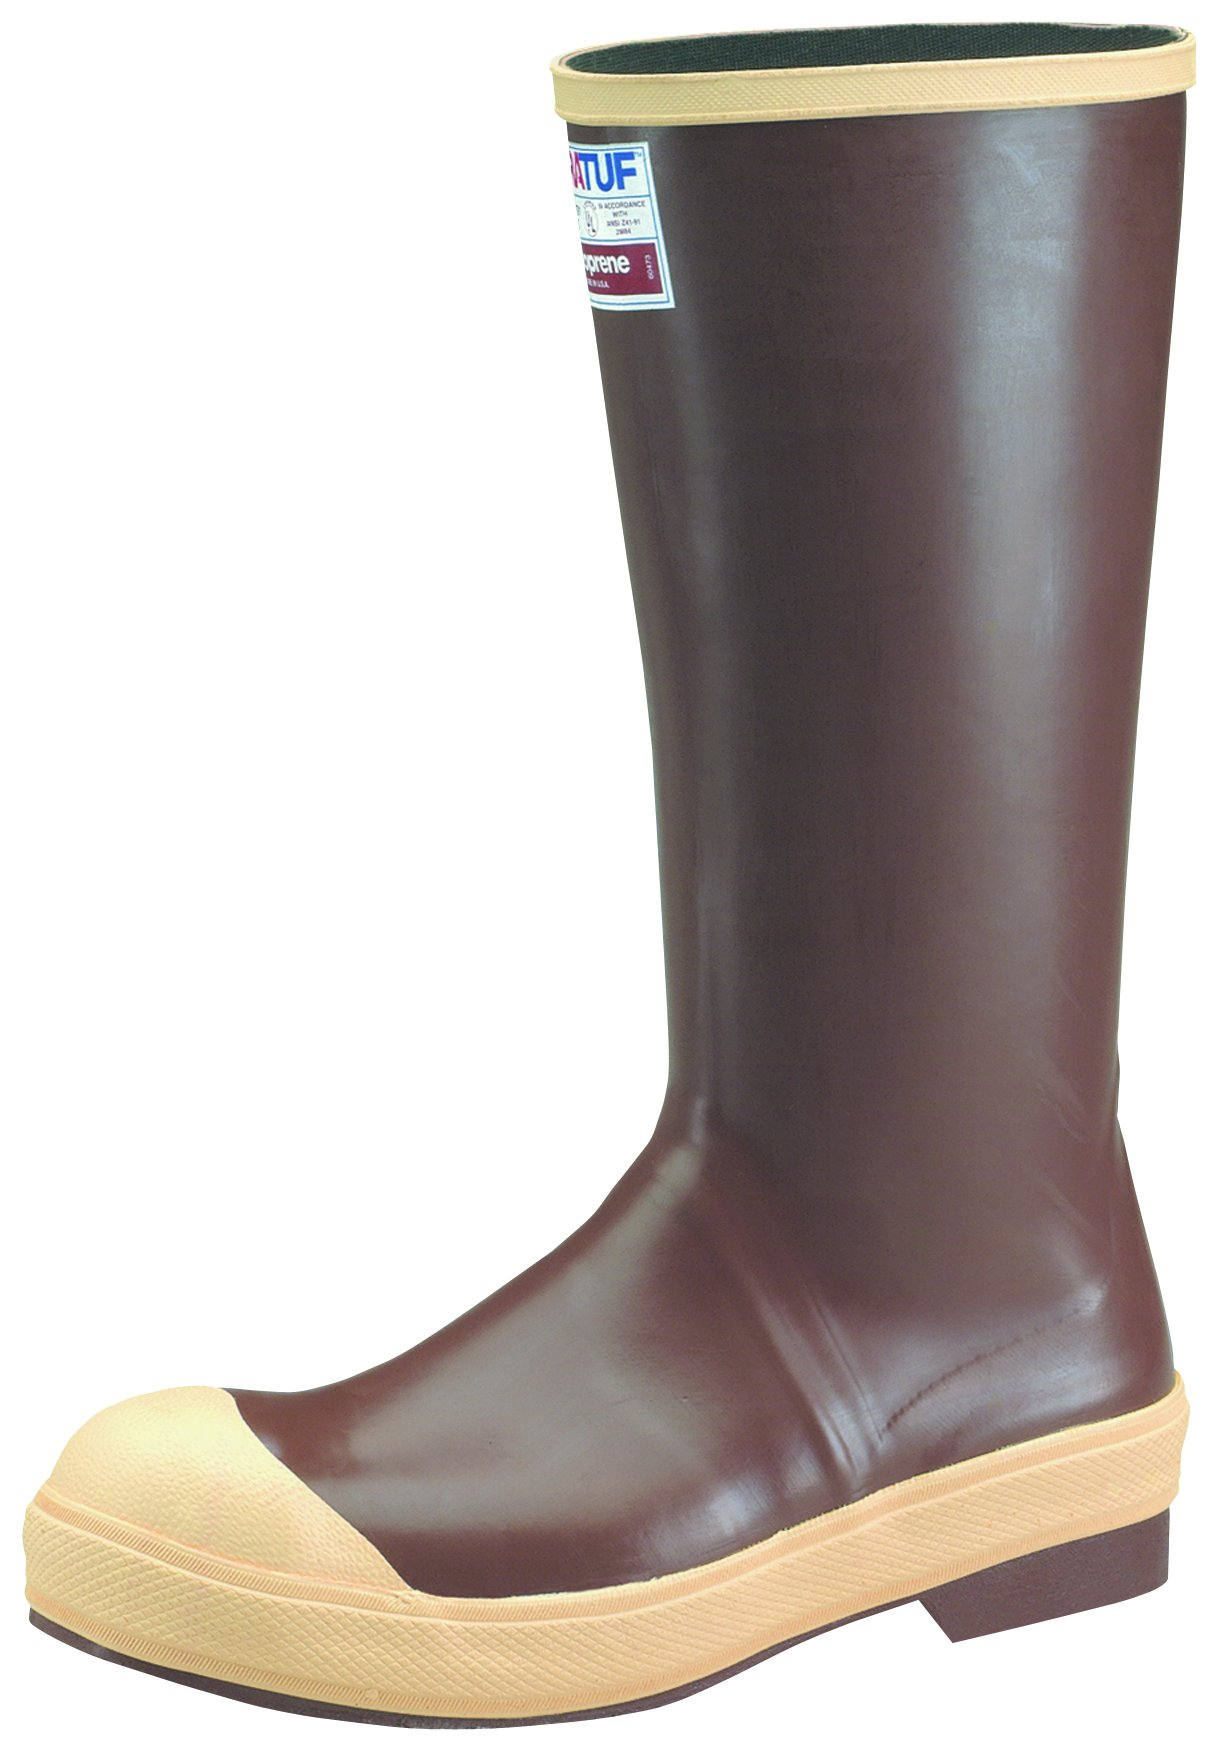 Xtratuf 16 Safety Boot Neoprene With Copper Color